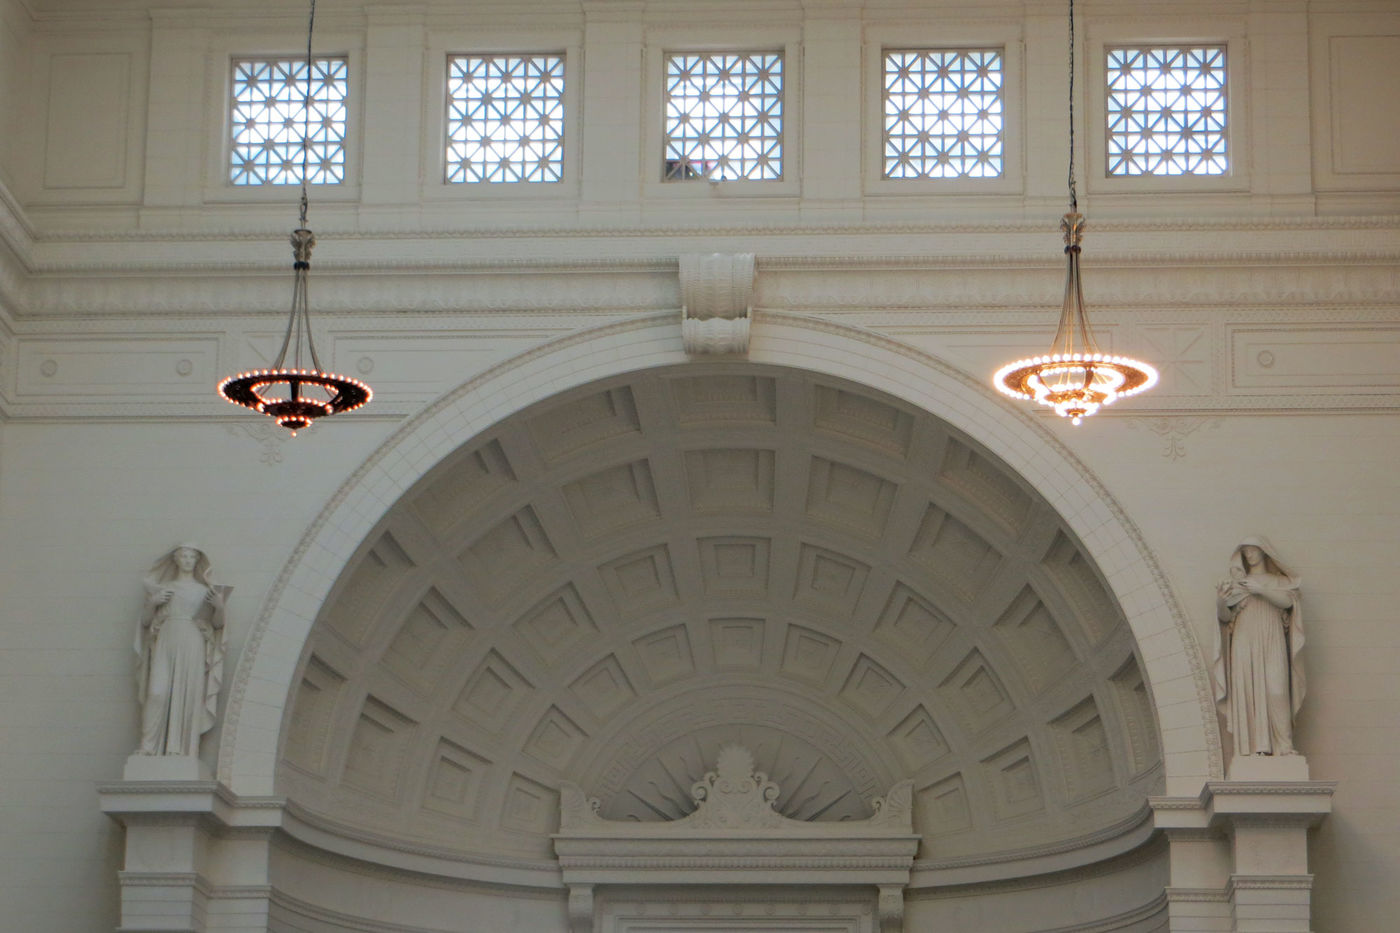 Two decorative chandeliers hang from the ceiling in a classical-style hall. The one on the left has dim, orange-hued light bulbs and the one on the right with much brighter, whiter light bulbs. Behind the chandeliers is an alcove with two sculptures of female figures standing on columns on either side.